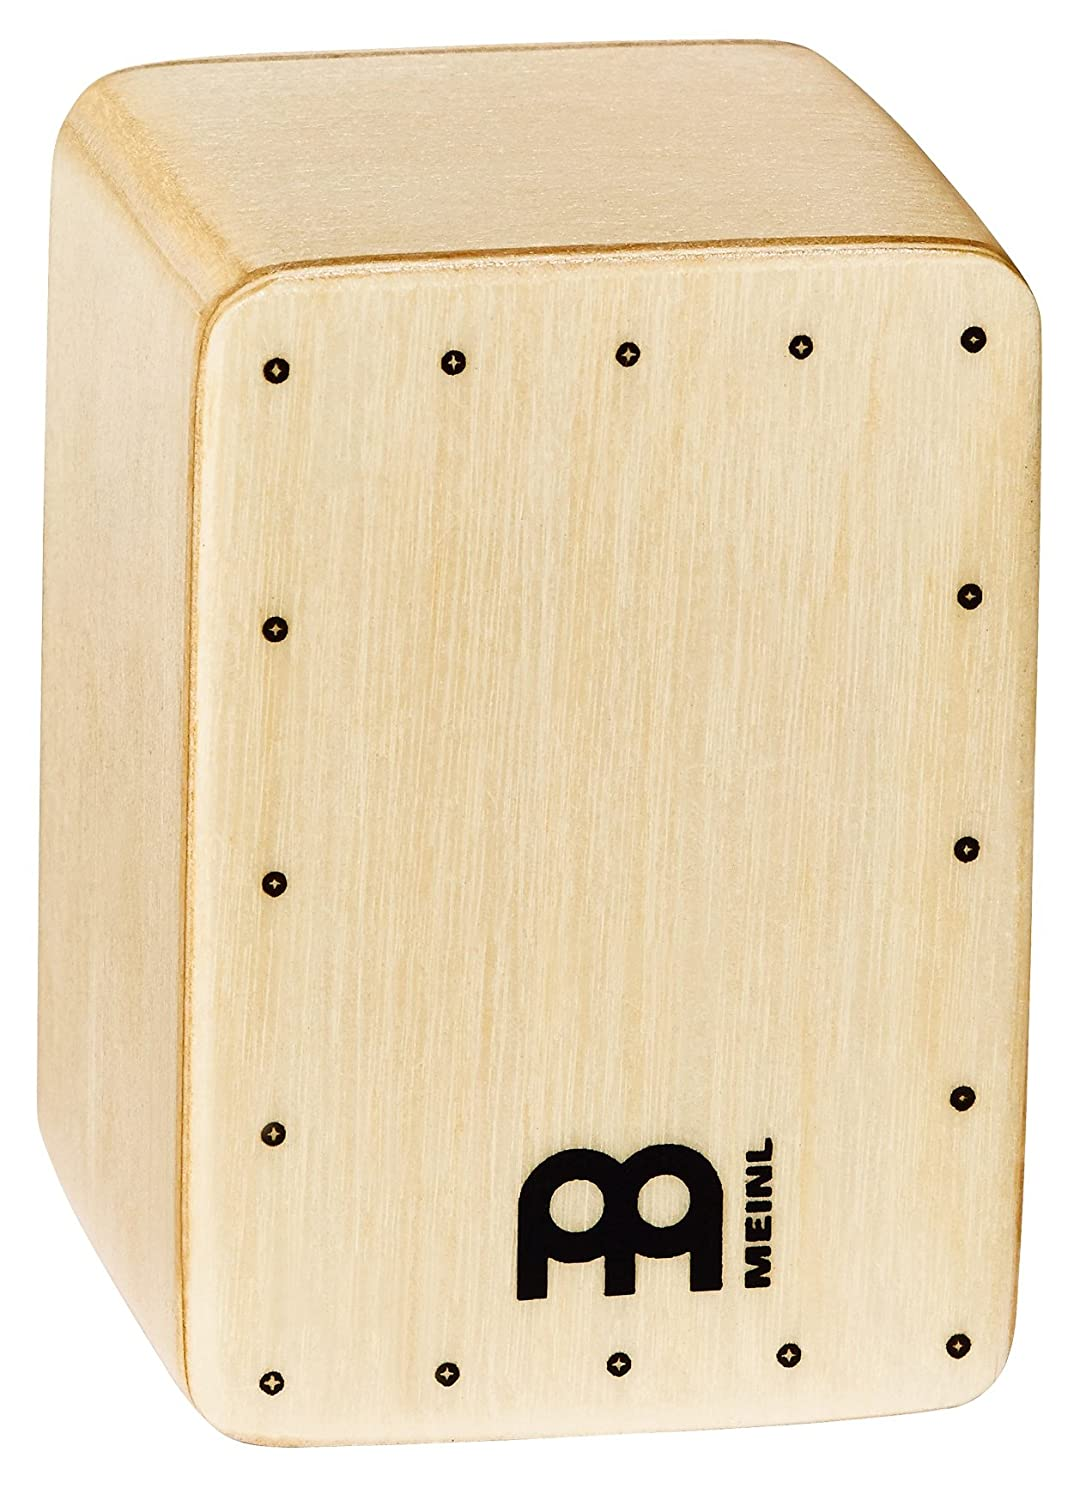 Meinl Percussion SH50 - MIni shaker tipo cajón